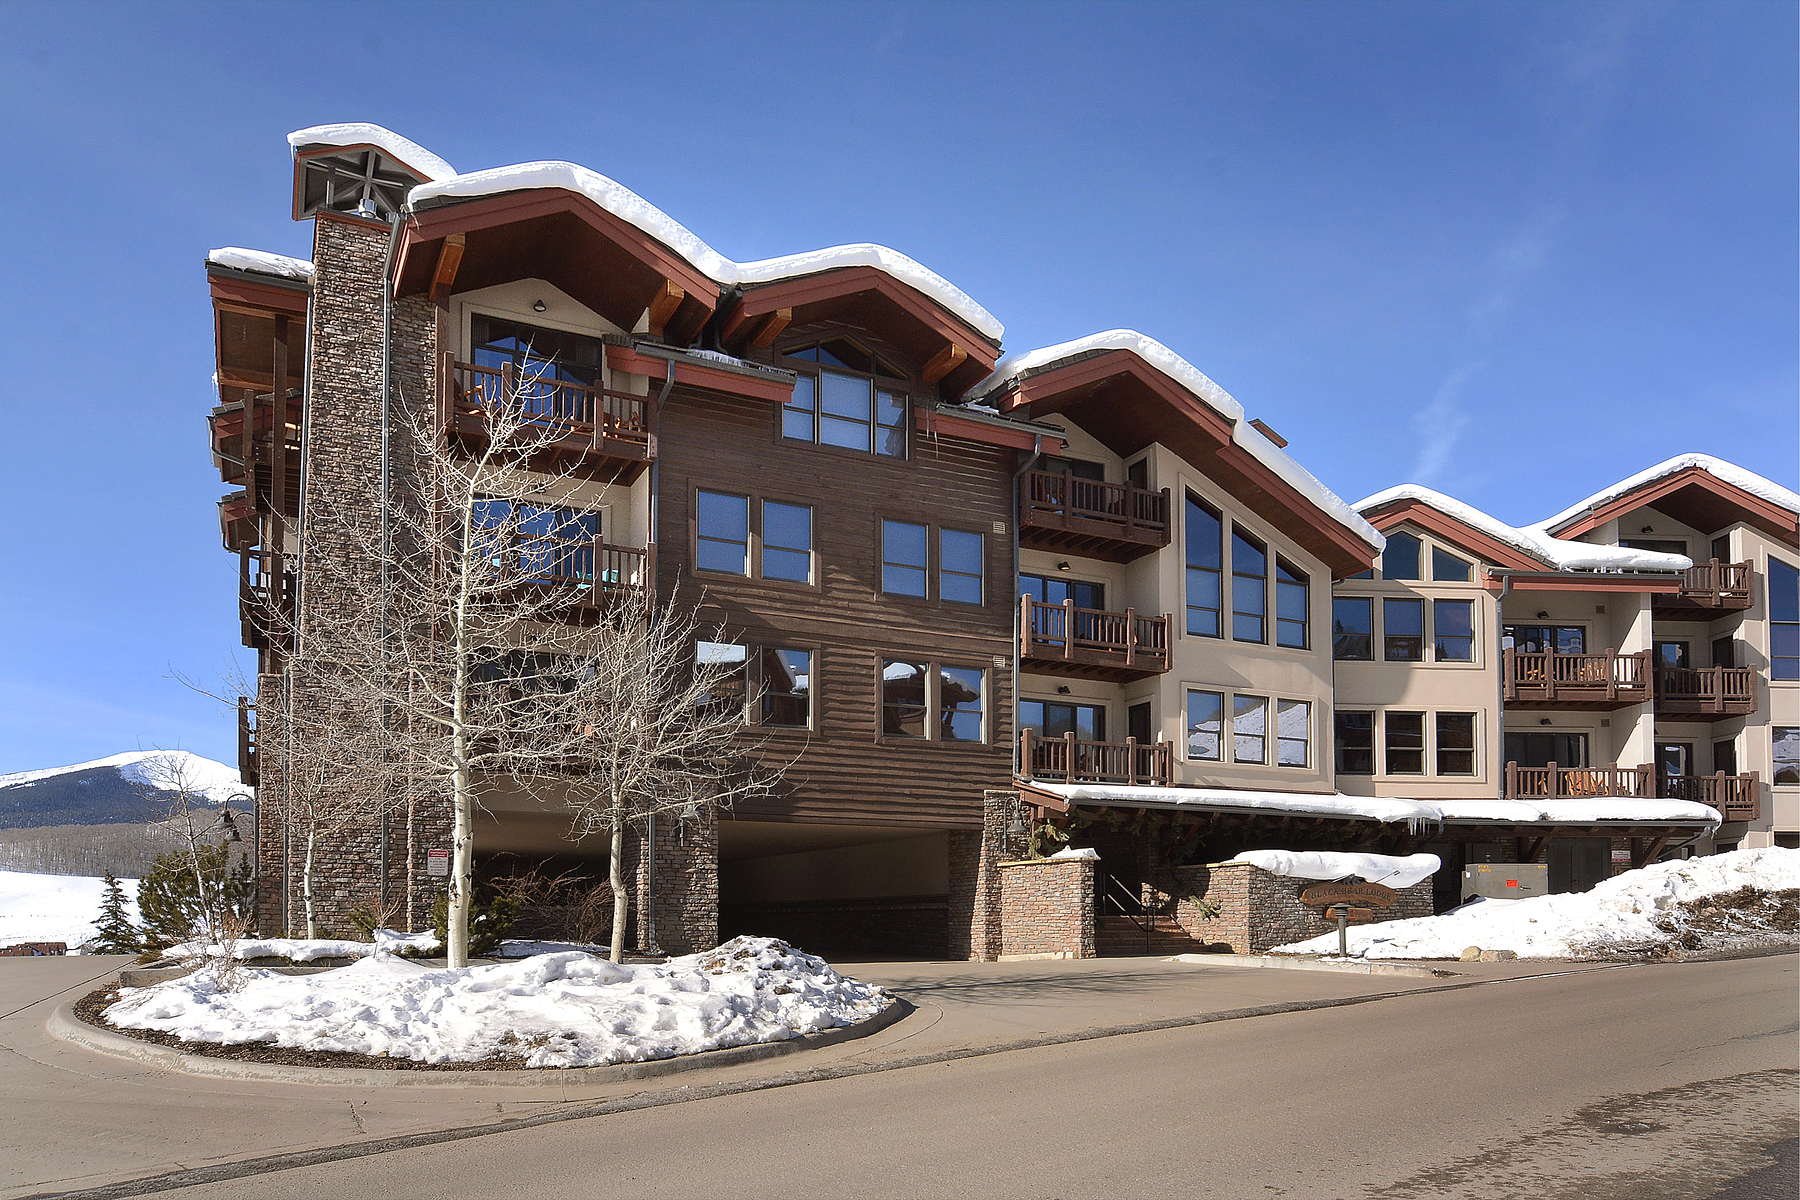 Condominium for Sale at Walk to West Wall Lift 9 Hunter Hill Road Unit 204 Mount Crested Butte, Colorado, 81225 United States